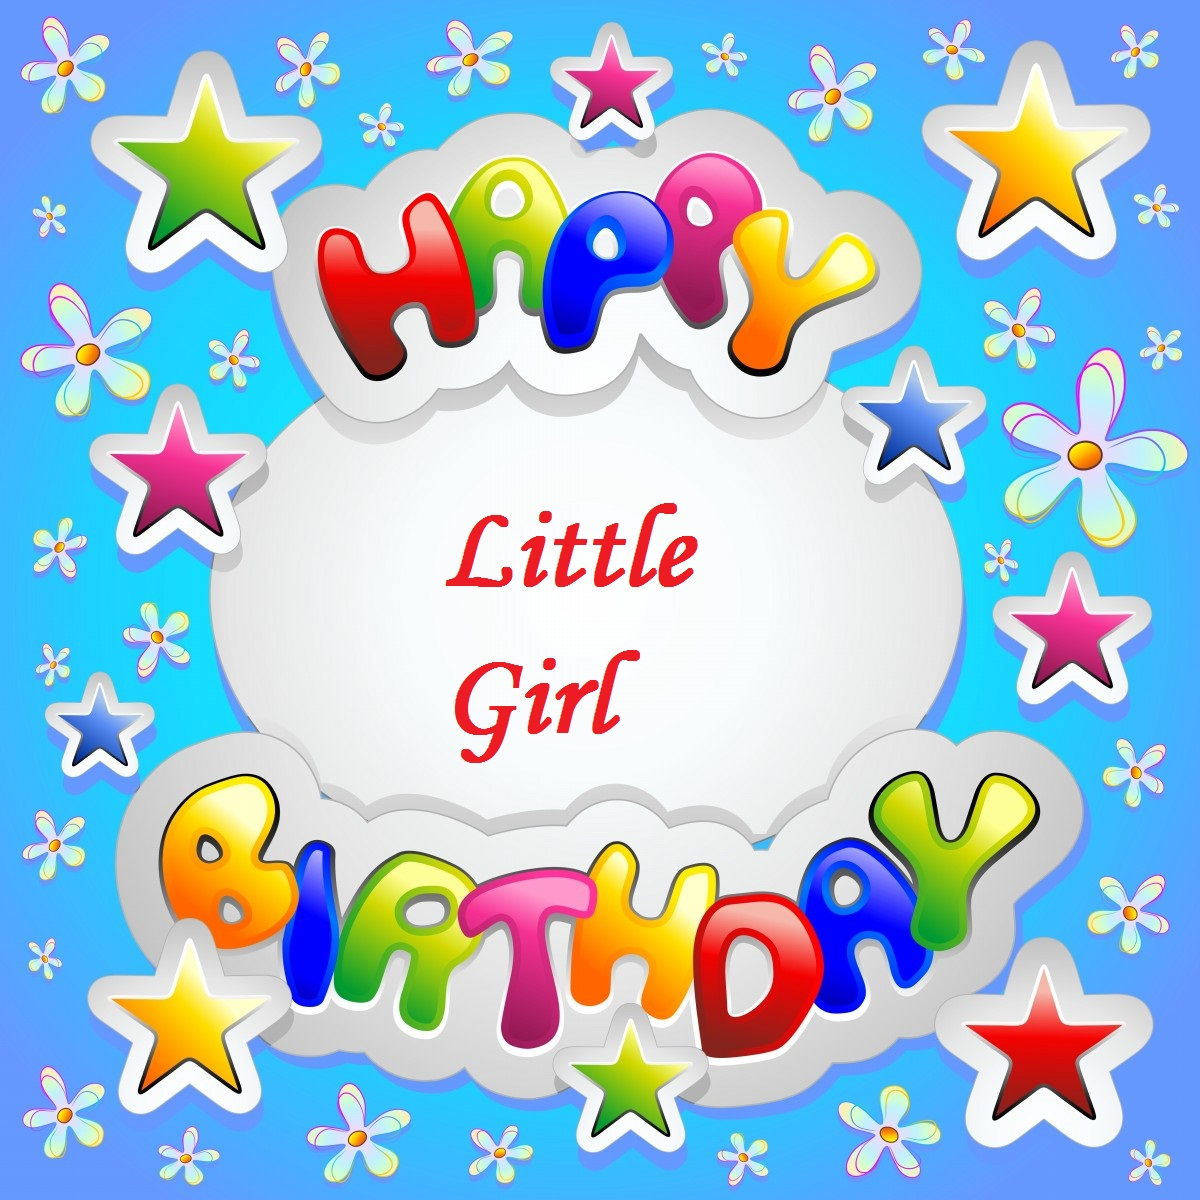 happy birthday message for kid girl ; lovely-greetings-birthday-wishes-for-little-girl-1